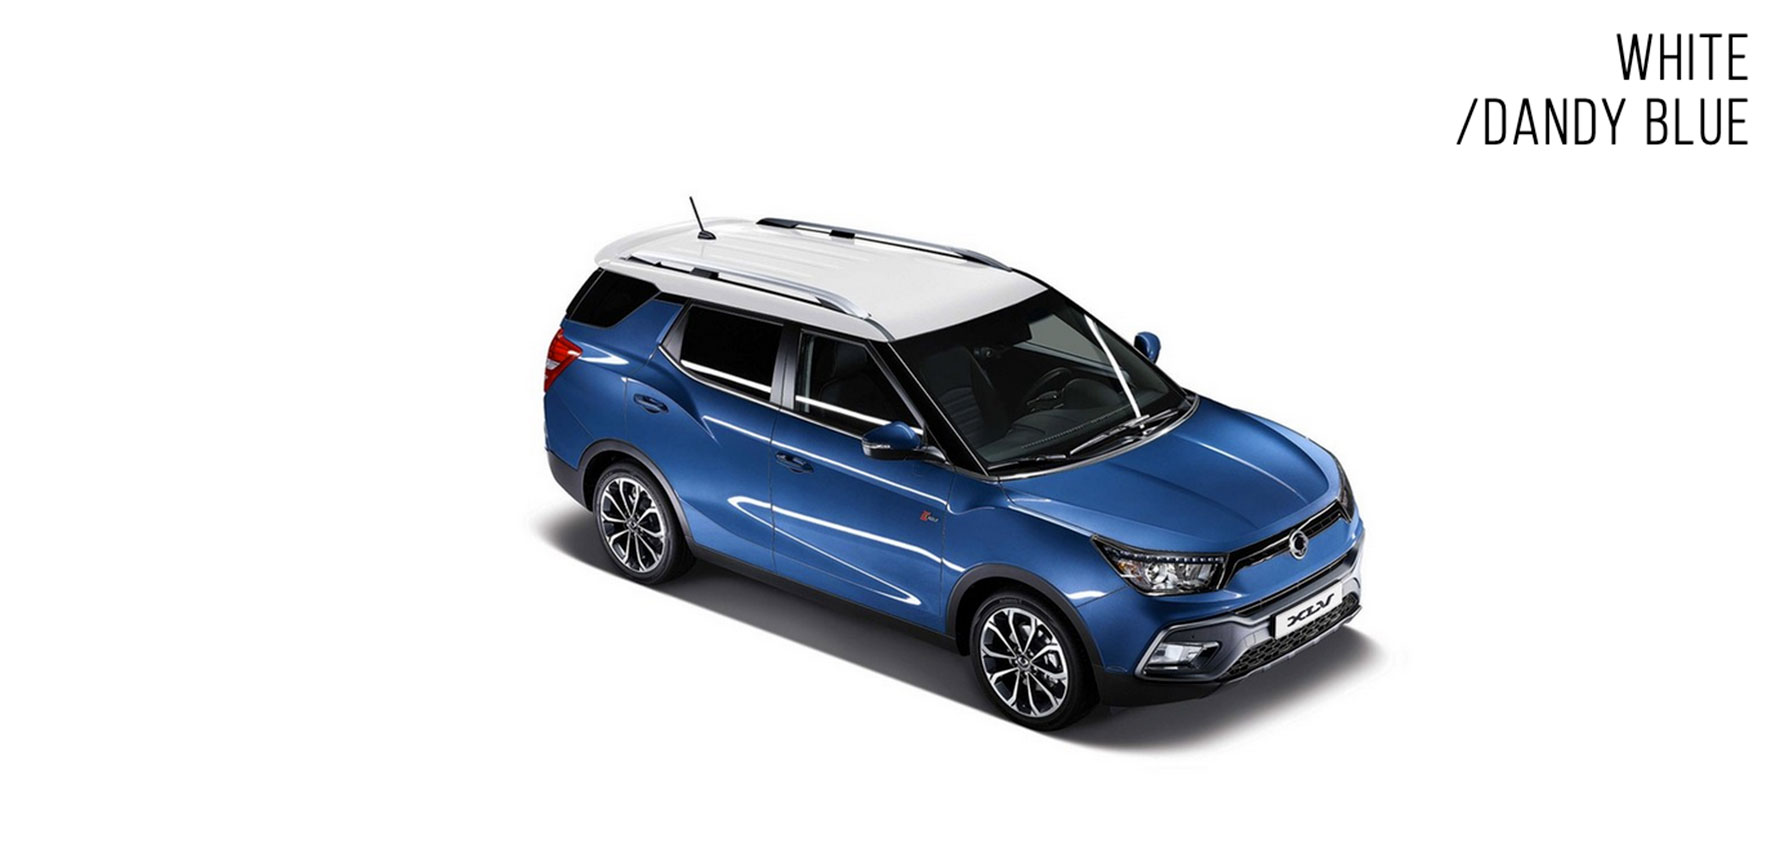 xlv-ssangyong-white-dandy-blue